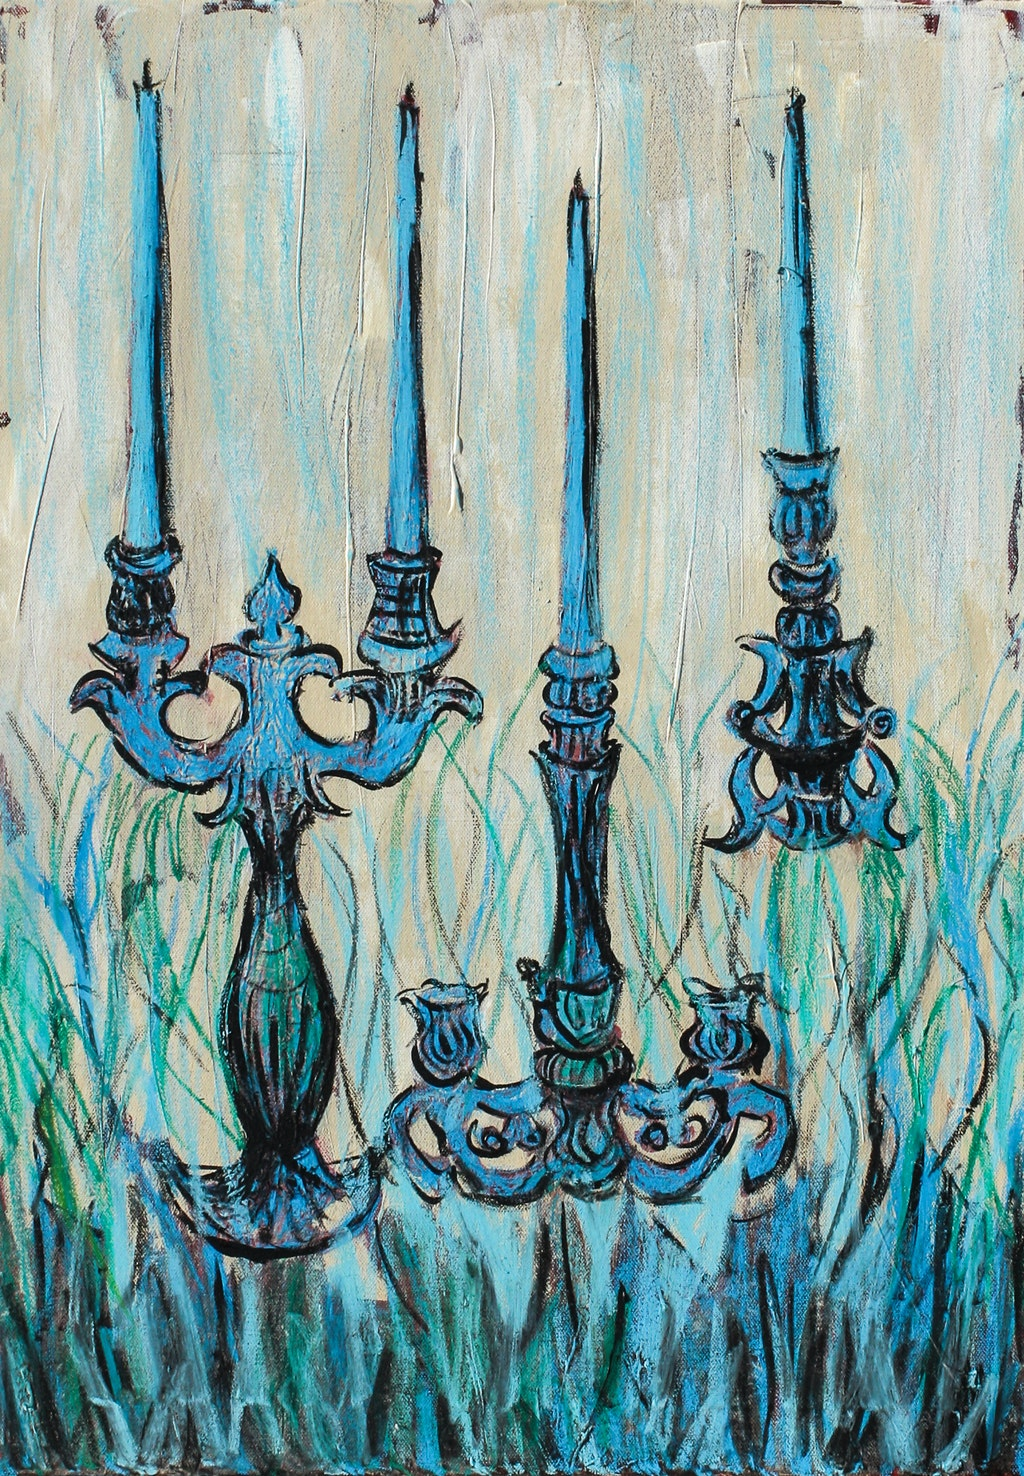 """Painting """"Blue candleholder"""", painted by Elena Birkenwald in 2010"""